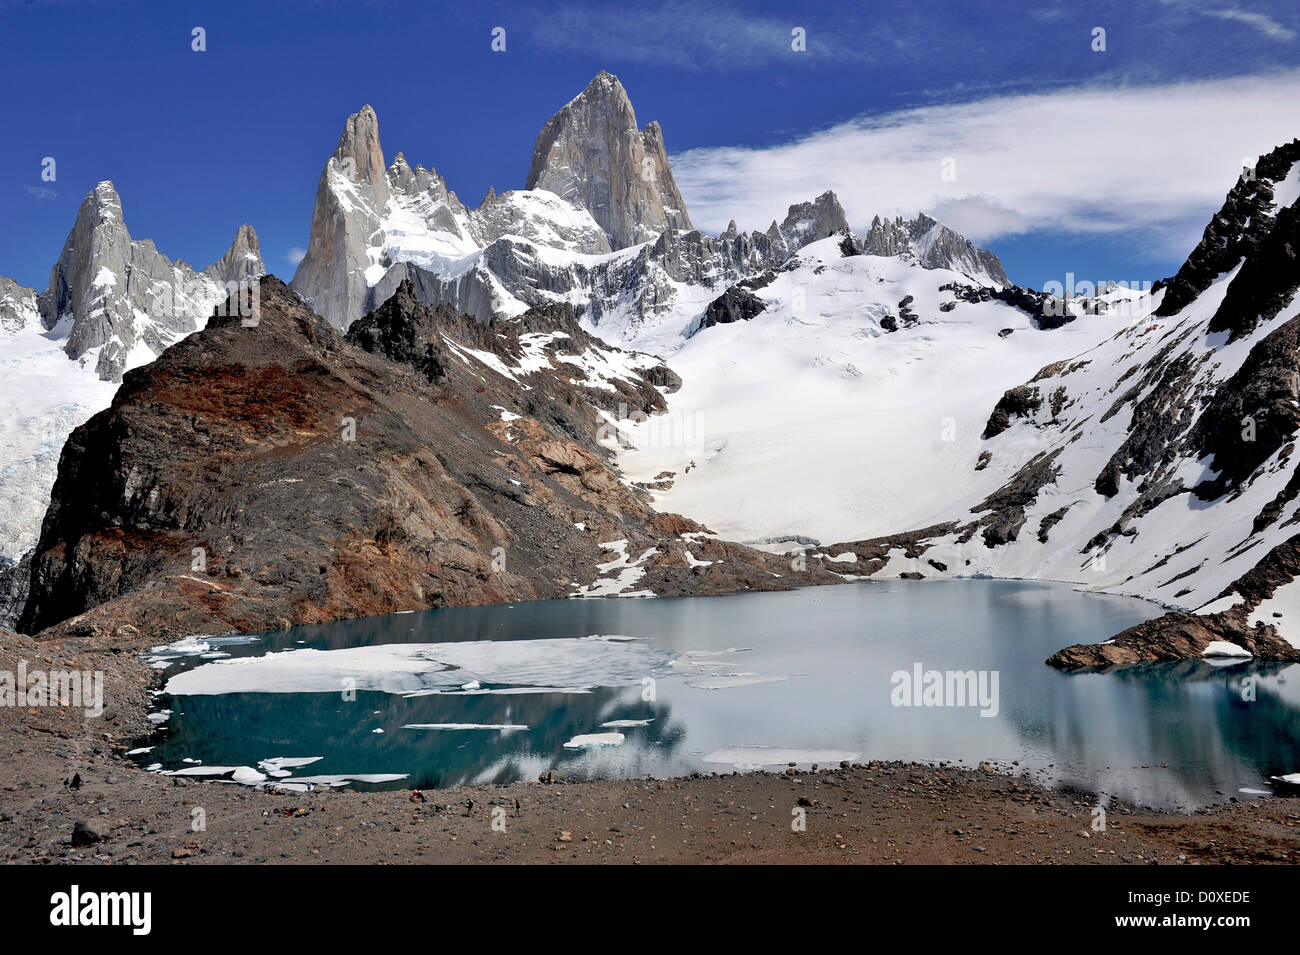 Monte Fitz Roy from the lookout in Los Glaciares National Park, El Chalten, Argentina - Stock Image